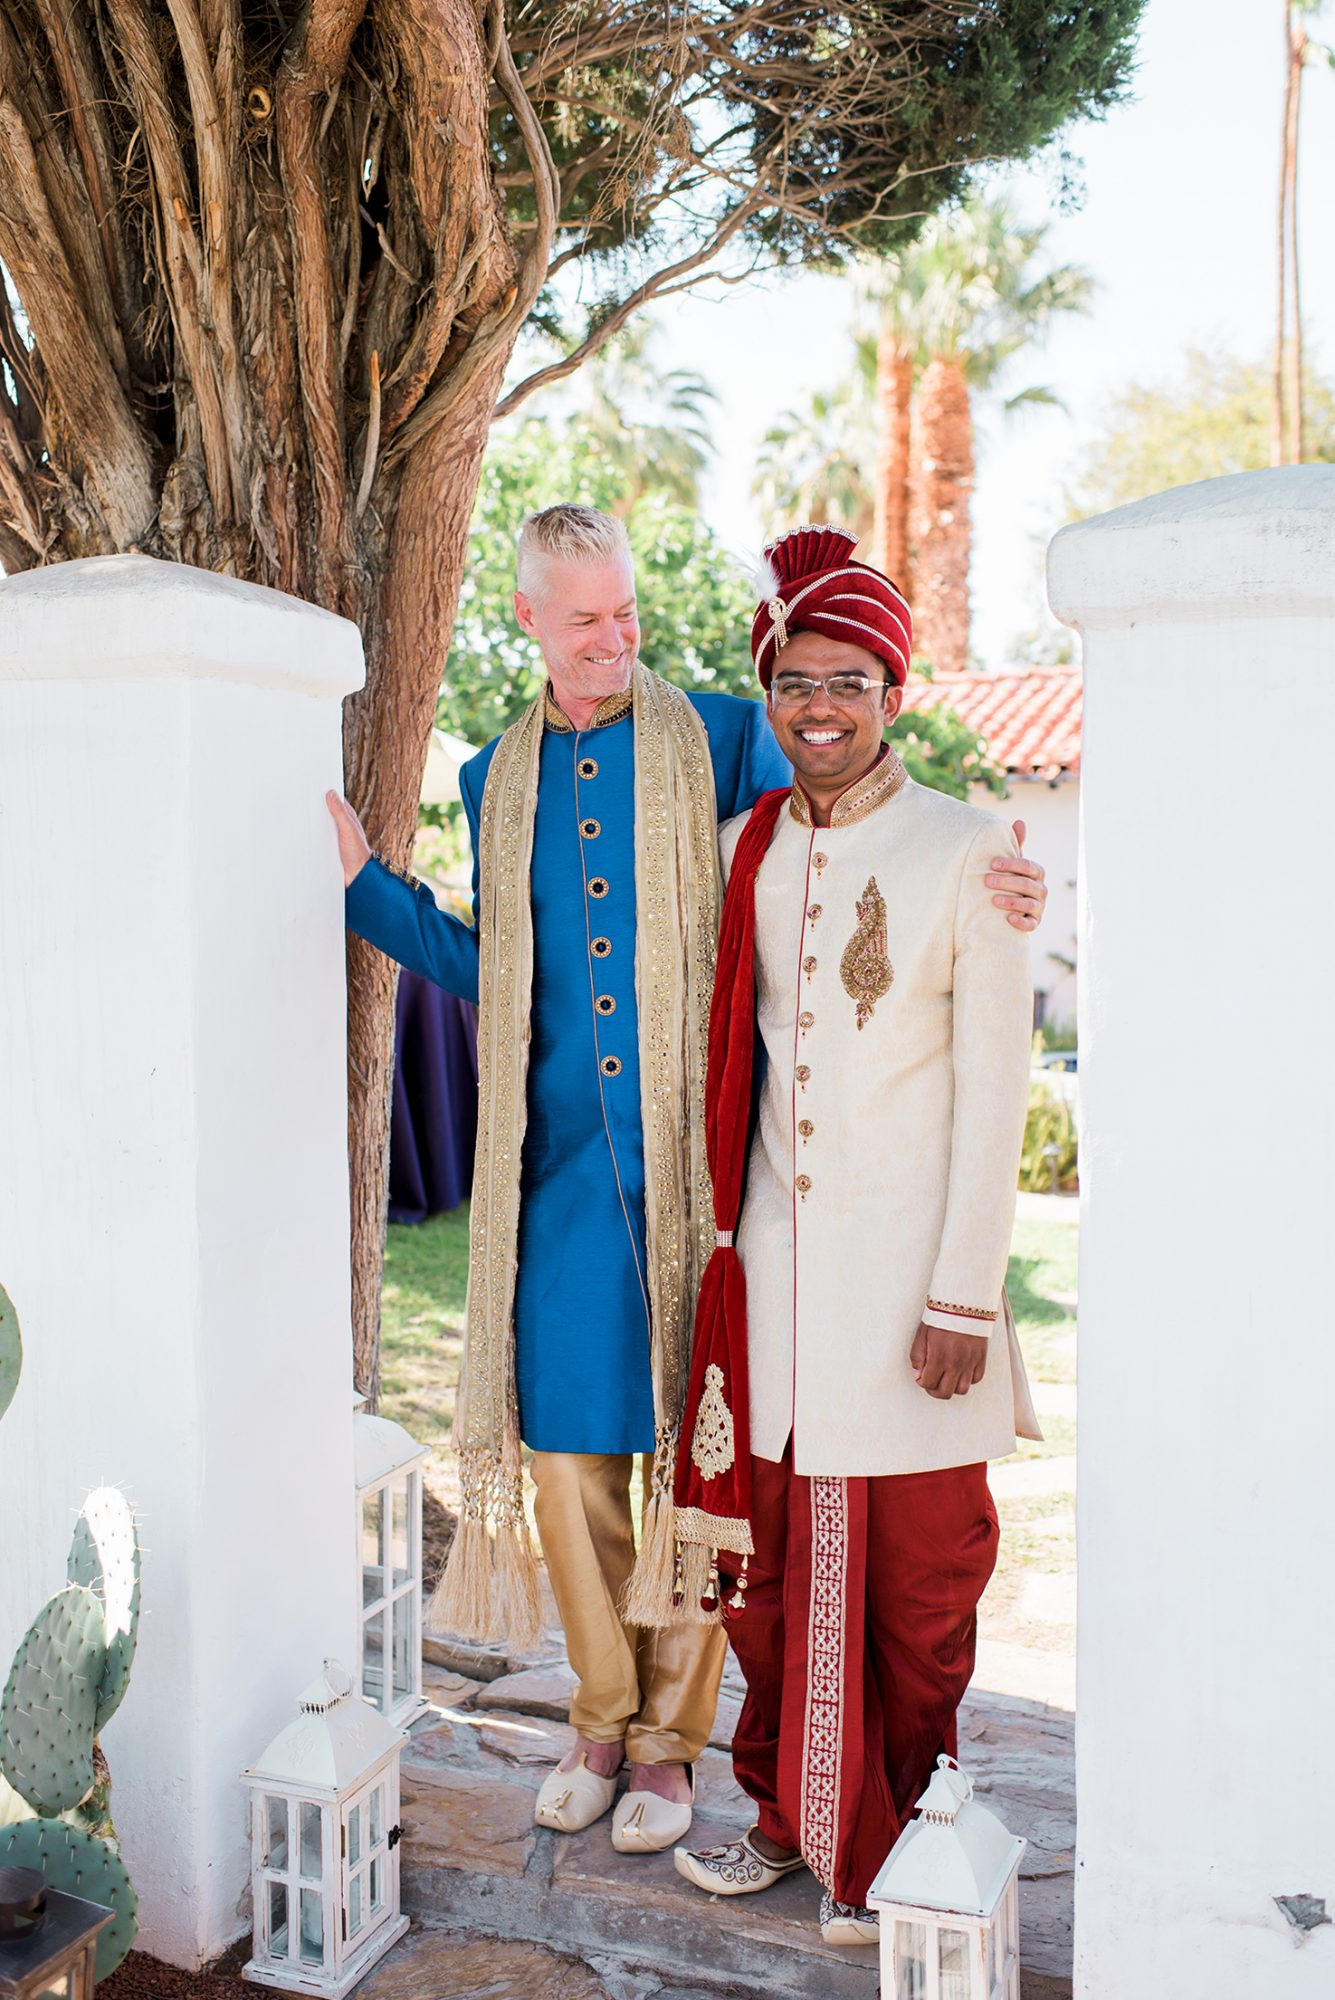 We love how the groom on the left is looking at his new husband in this image.